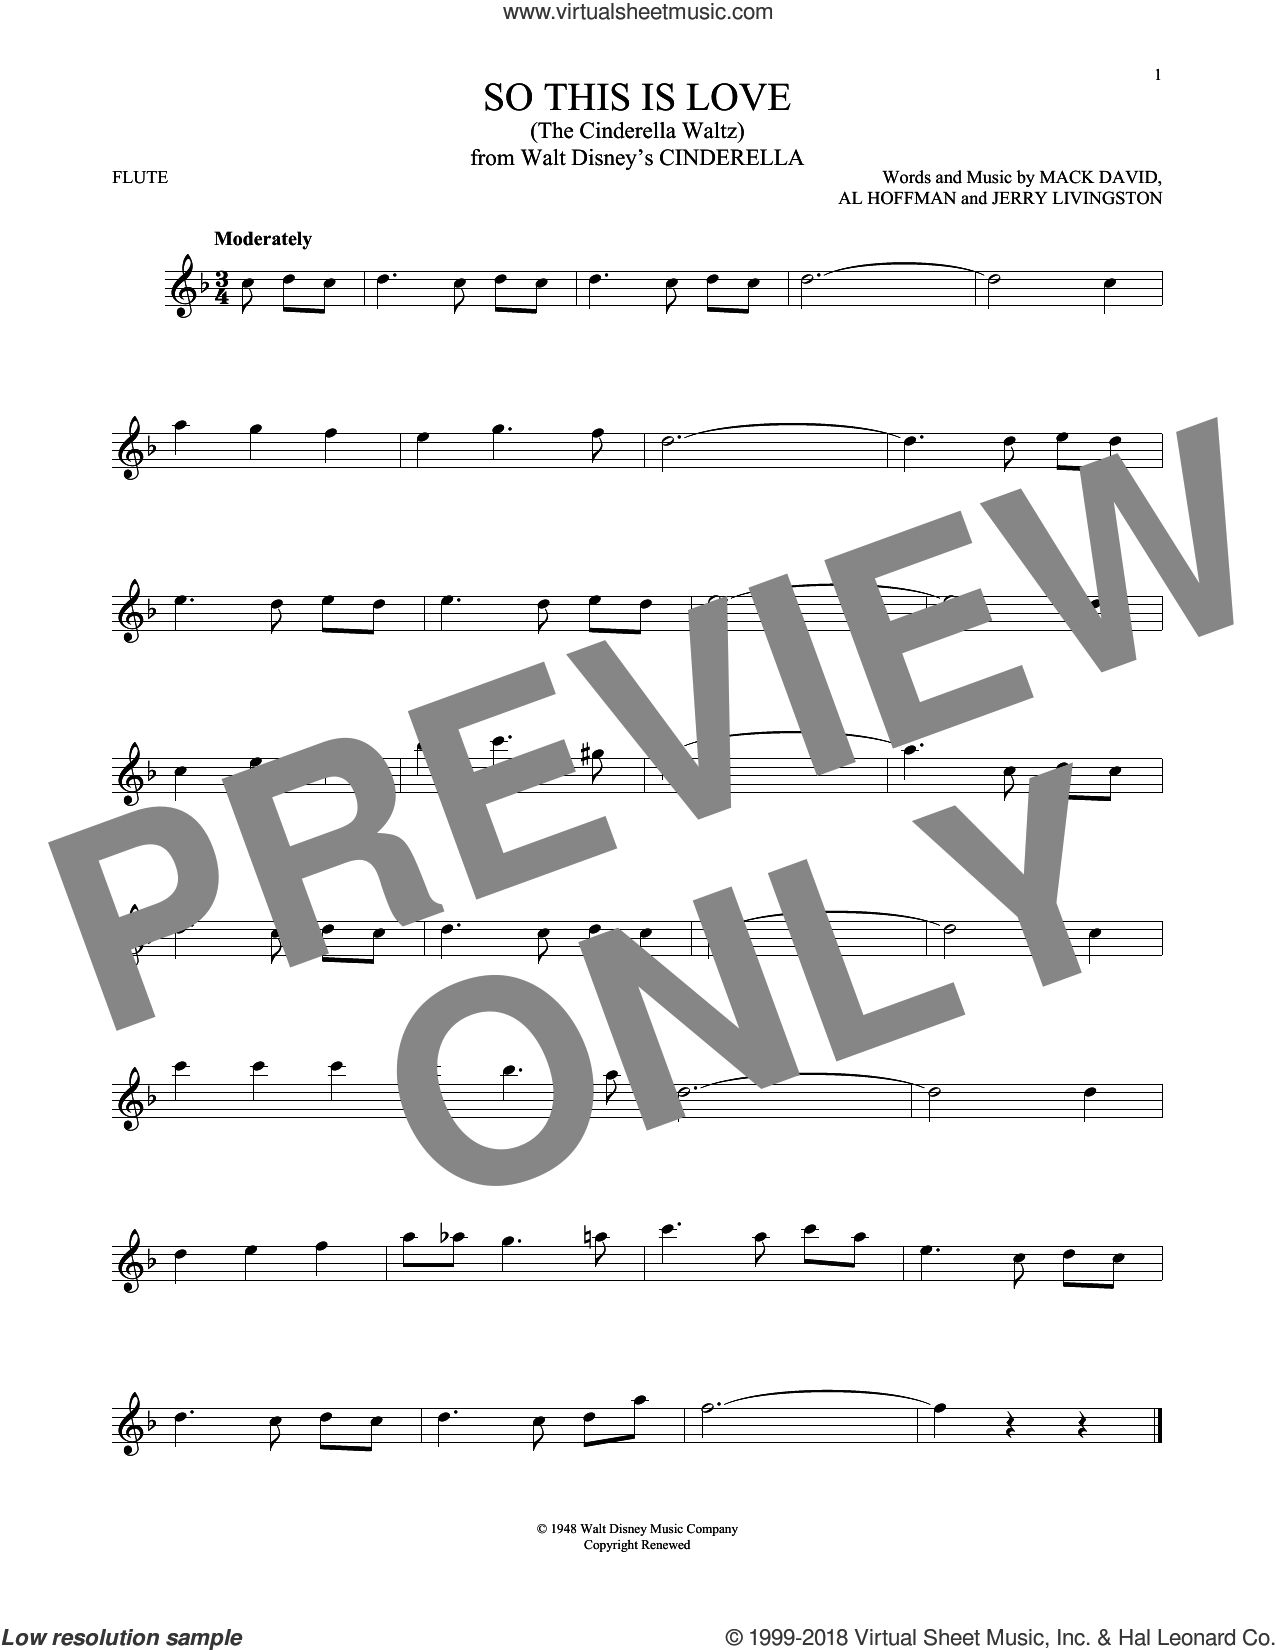 So This Is Love sheet music for flute solo by Al Hoffman, James Ingram, Jerry Livingston, Mack David and Mack David, Al Hoffman and Jerry Livingston, intermediate skill level